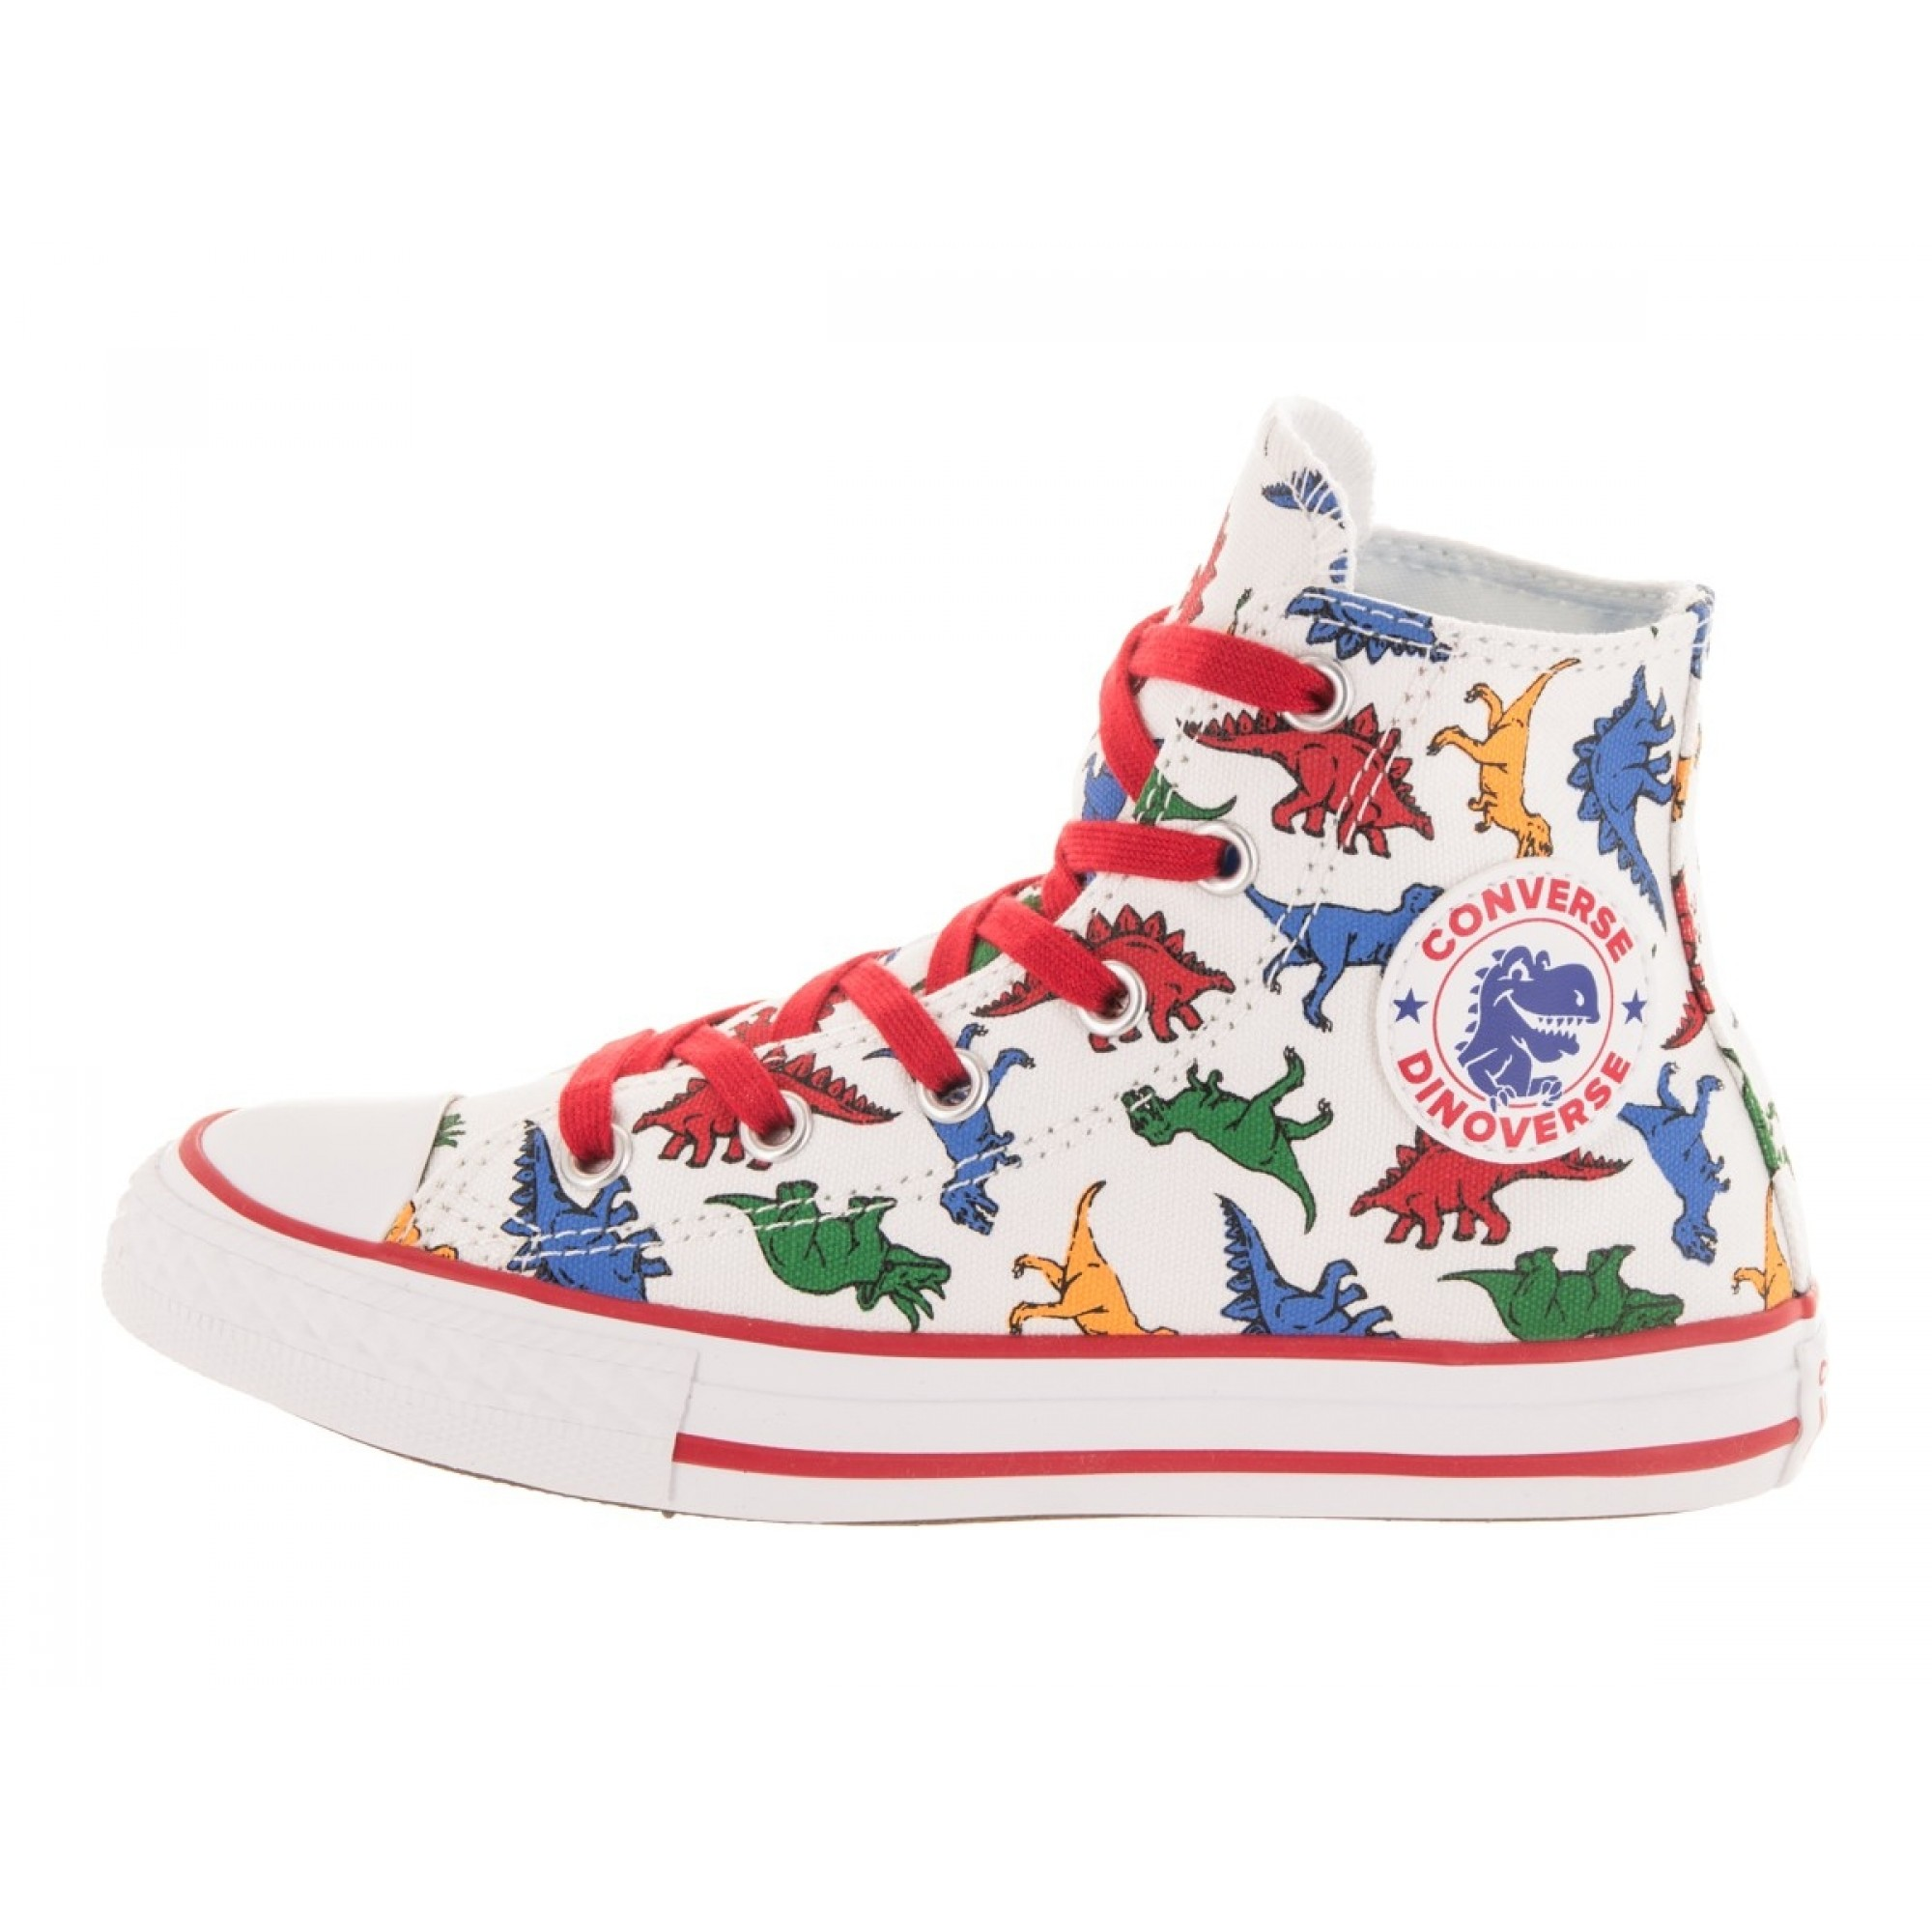 Venue Store CONVERSE Chuck Taylor All Star Dinoverse Youth Hi Shoe - White  Enamel Red Totally Blue Free Delivery Over  100 a3d8732135